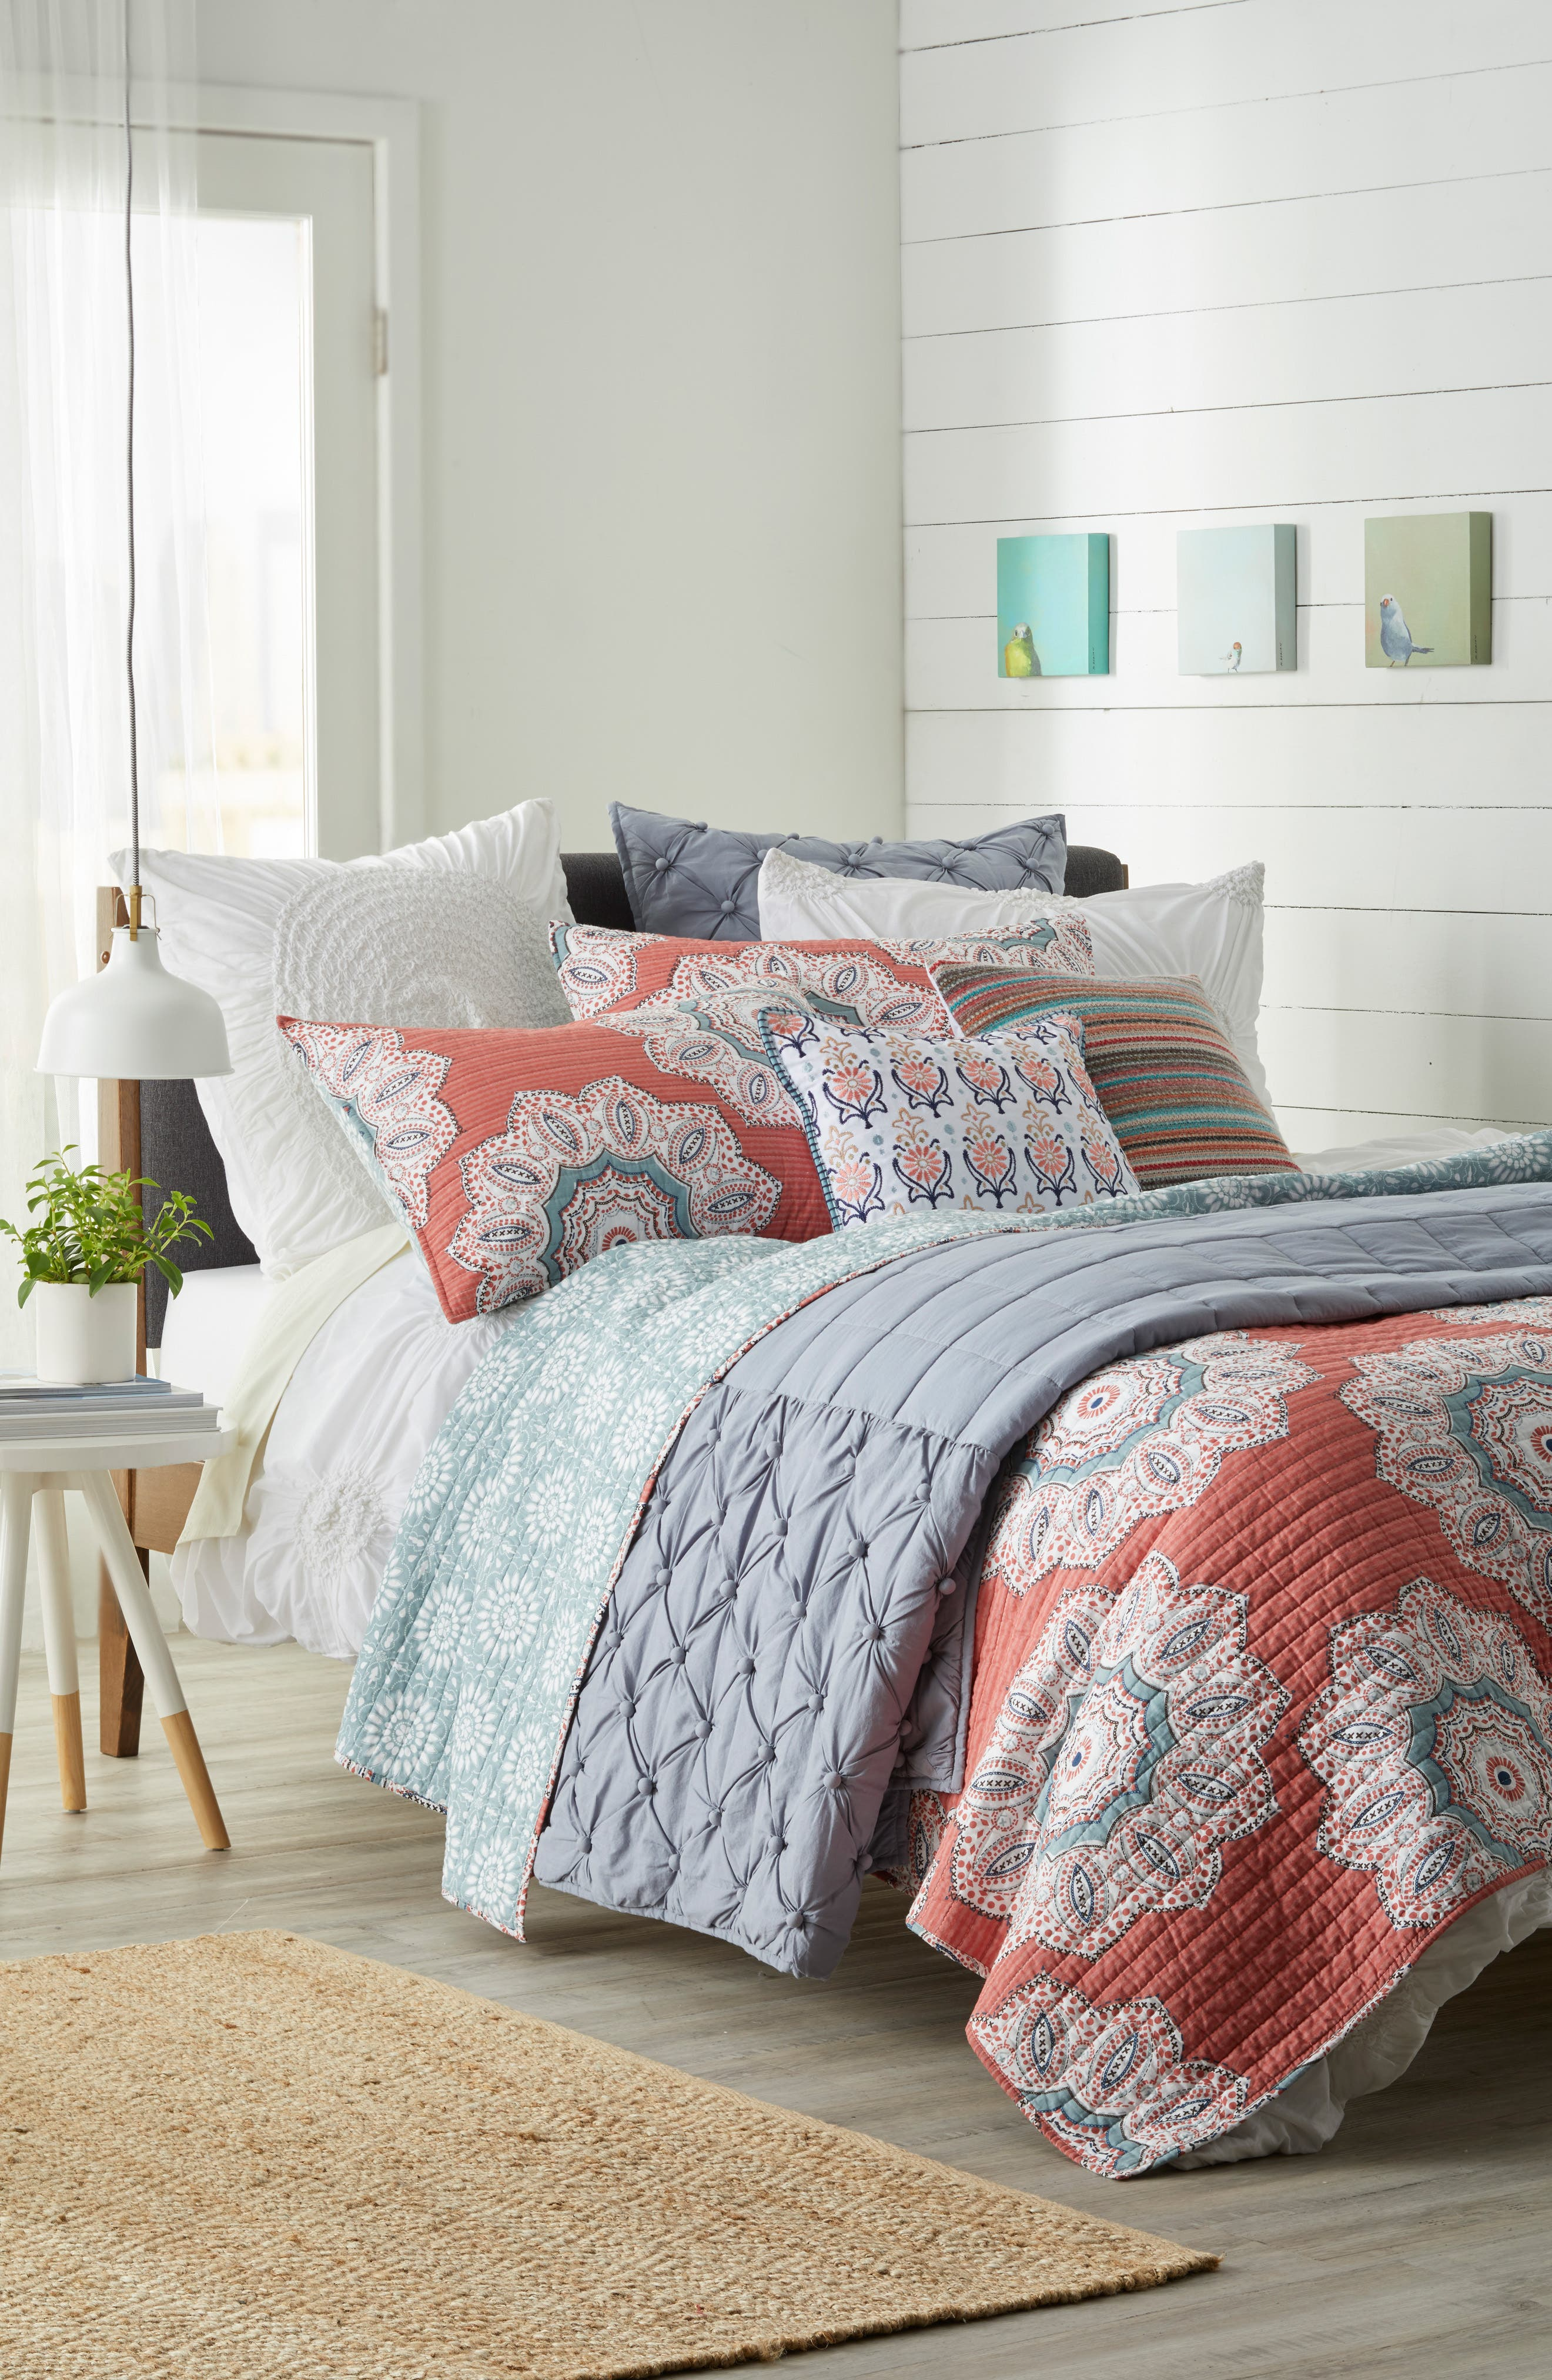 Nordstrom at Home & Levtex Bedding Collections